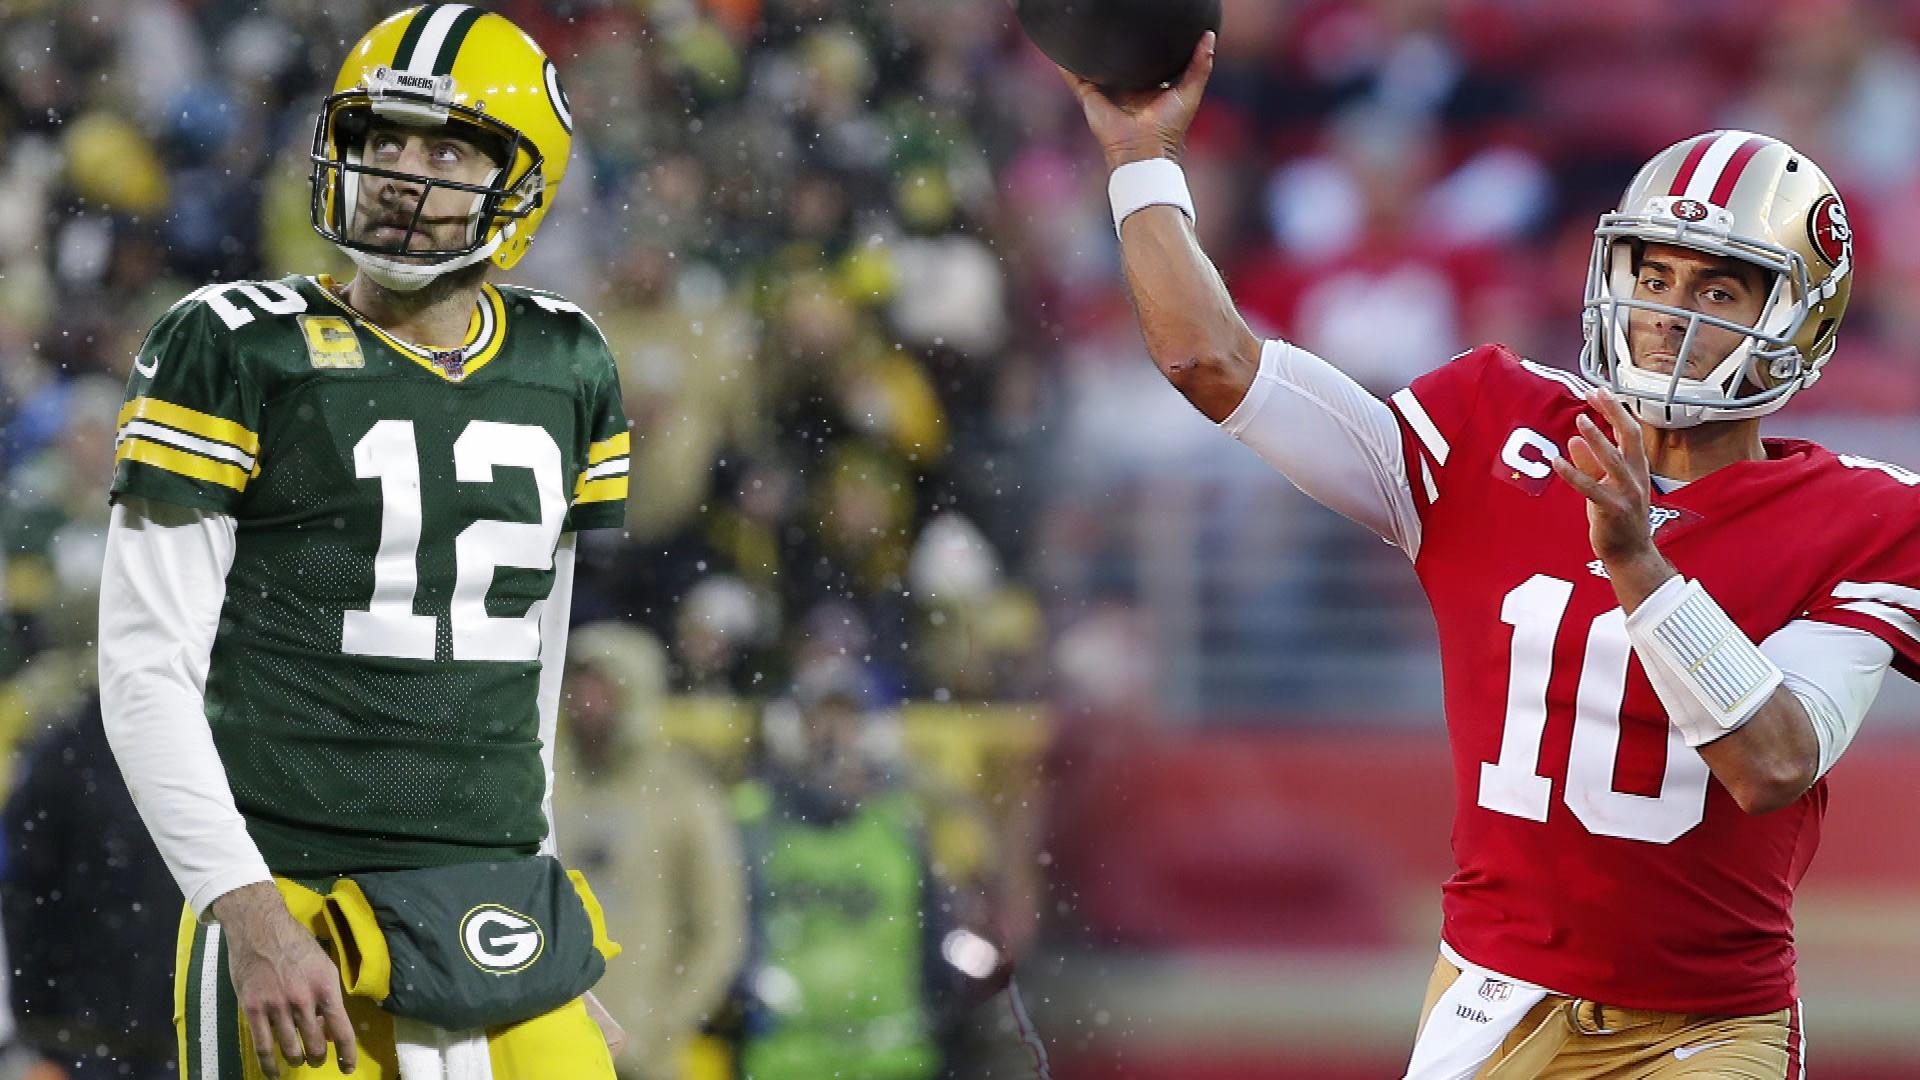 Packers vs. 49ers NFL Week 12 fantasy preview